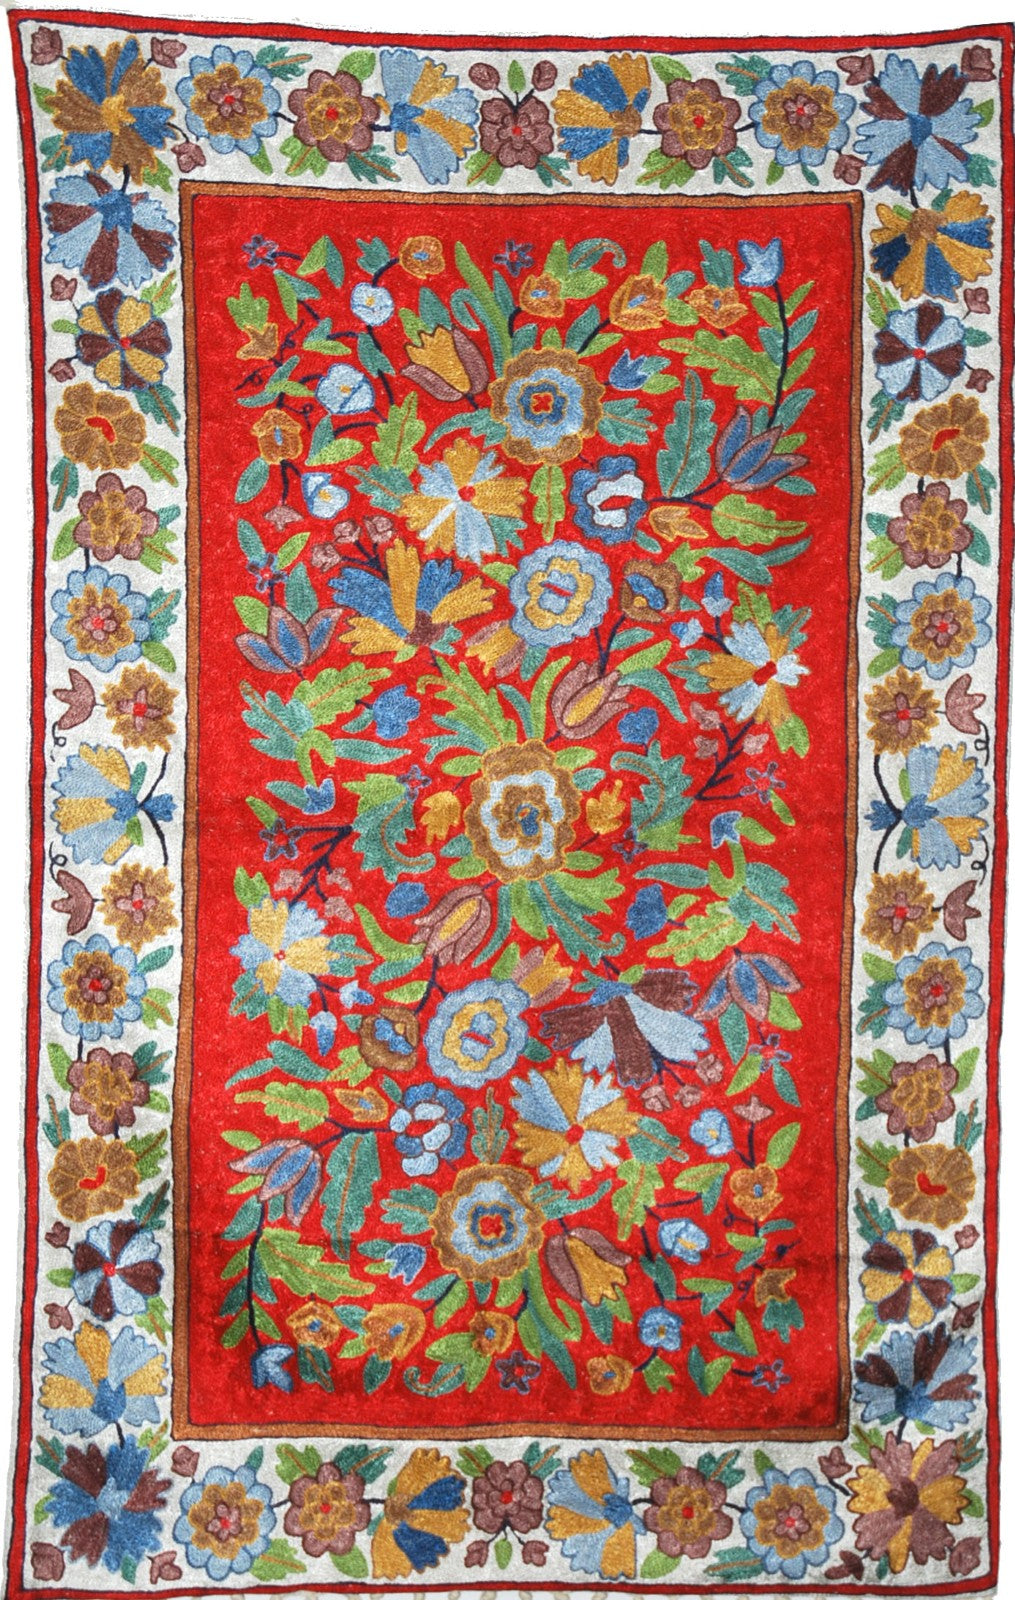 ChainStitch Tapestry Silk Rug, Multicolor Embroidery 2.5x4 feet #CWR10104